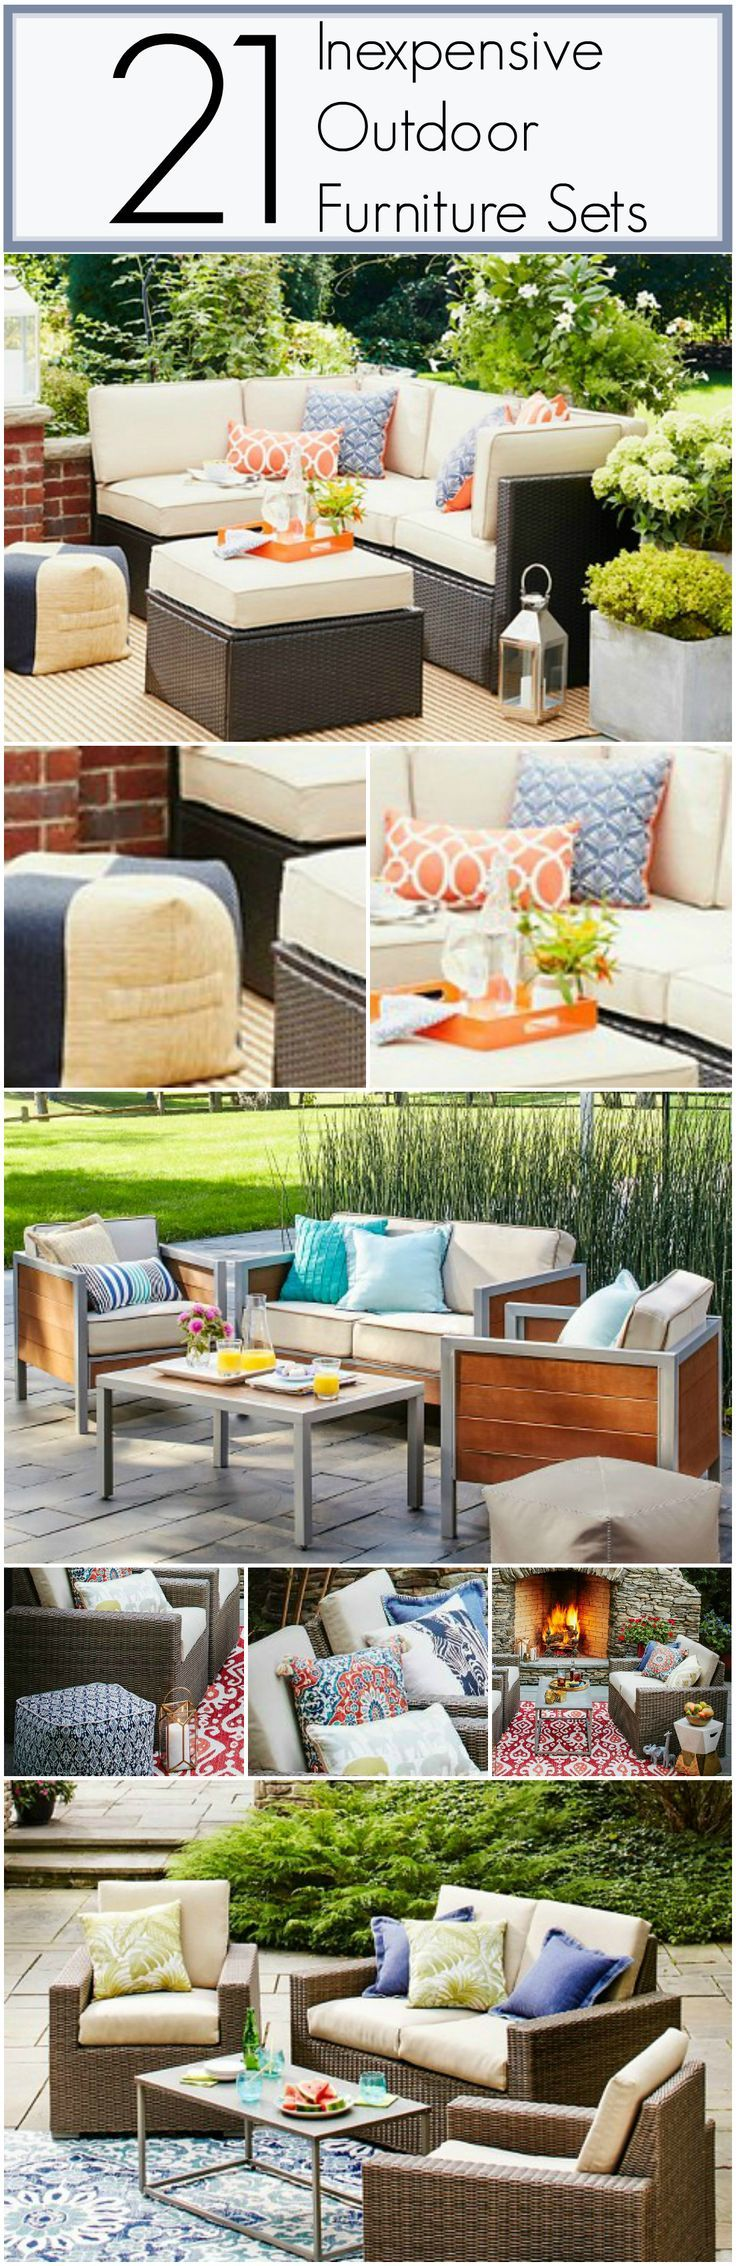 25 Best Ideas About Inexpensive Patio On Pinterest